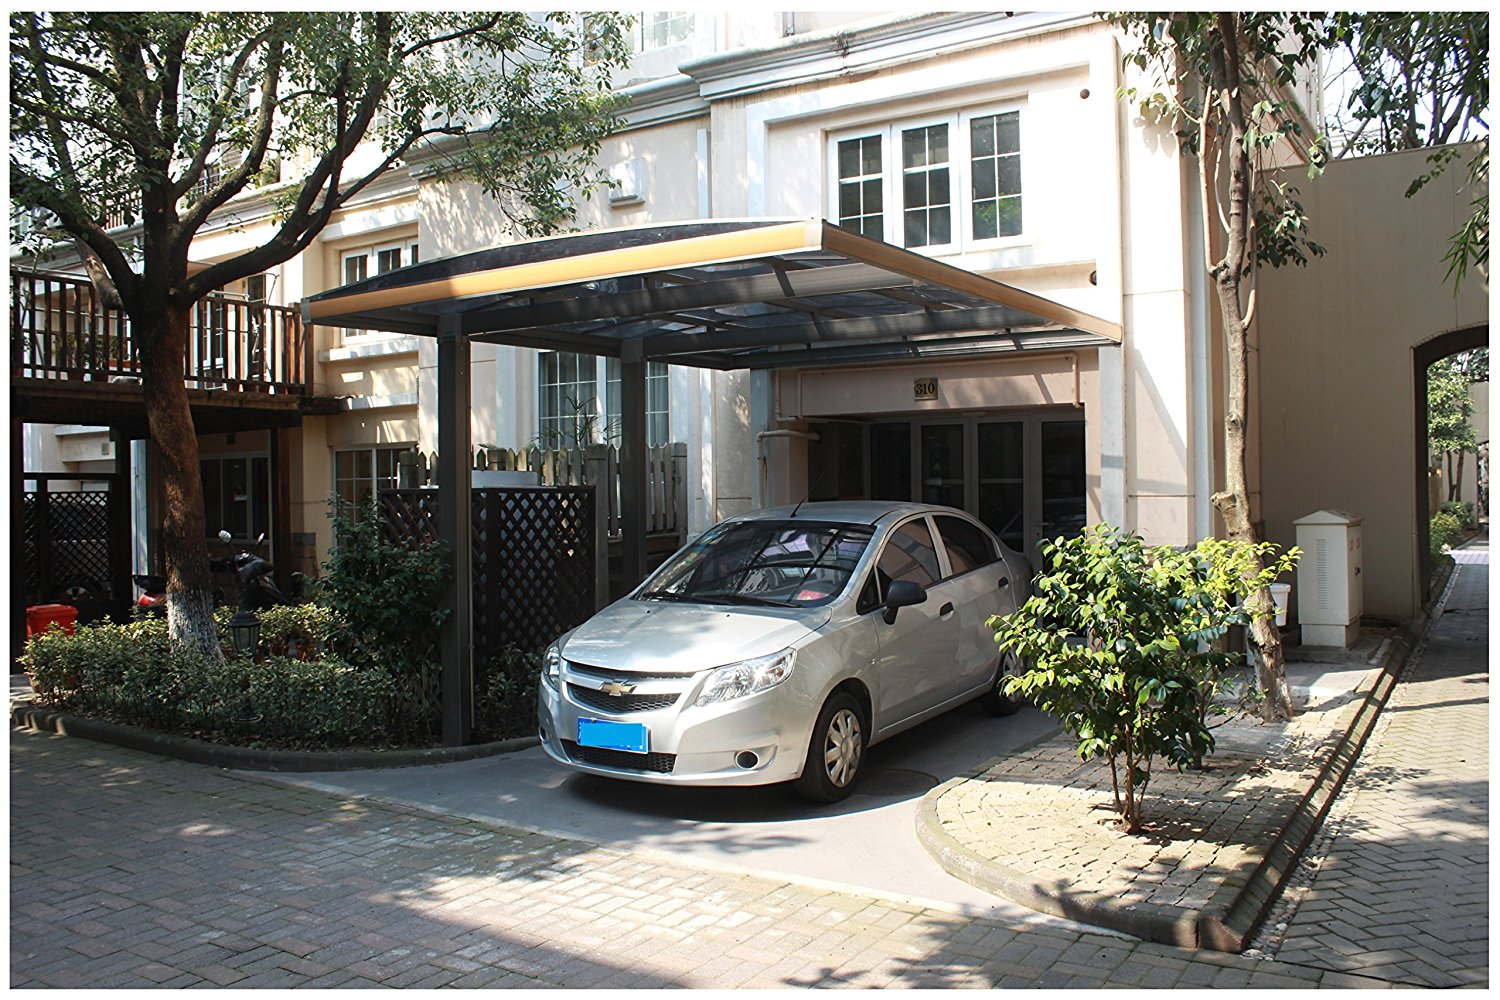 10u0027 x 18u0027 Premium Metal Carport Aluminum Polycarbonate Garage Canopy Durable with Gutter Metal Vehicle Shelter for Car Yacht and Copter  Car Cover Heavy ... & 10u0026#39; x 18u0026#39; Premium Metal Carport Aluminum Polycarbonate ...